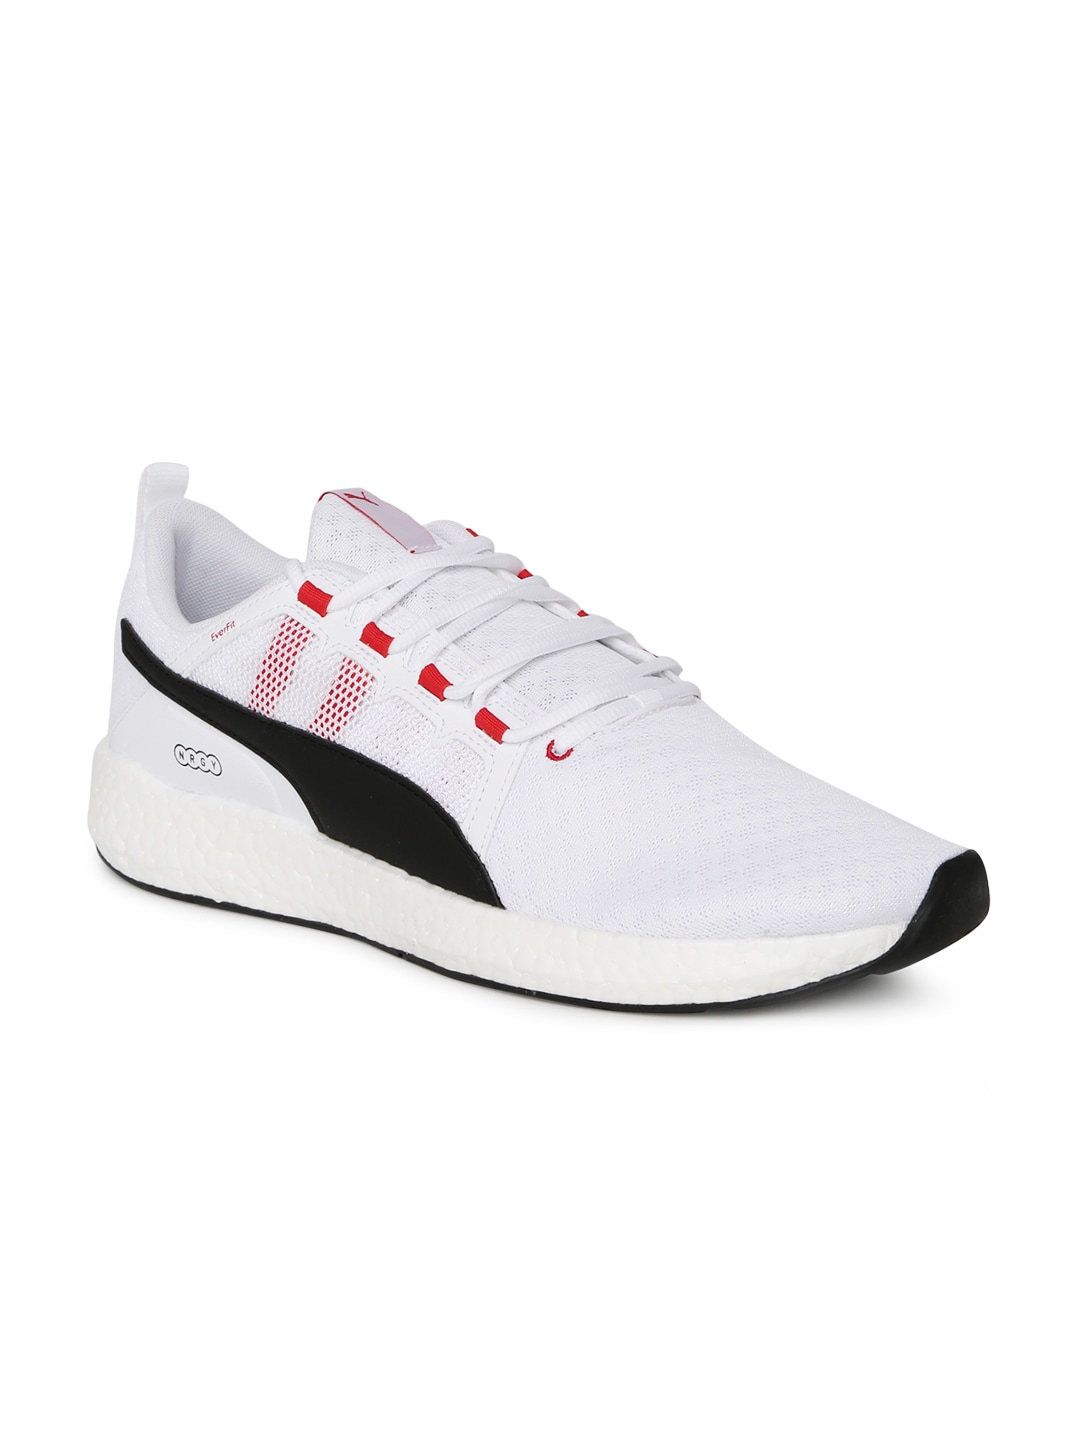 6fa195dcced0 White Sports Shoes - Buy White Sports